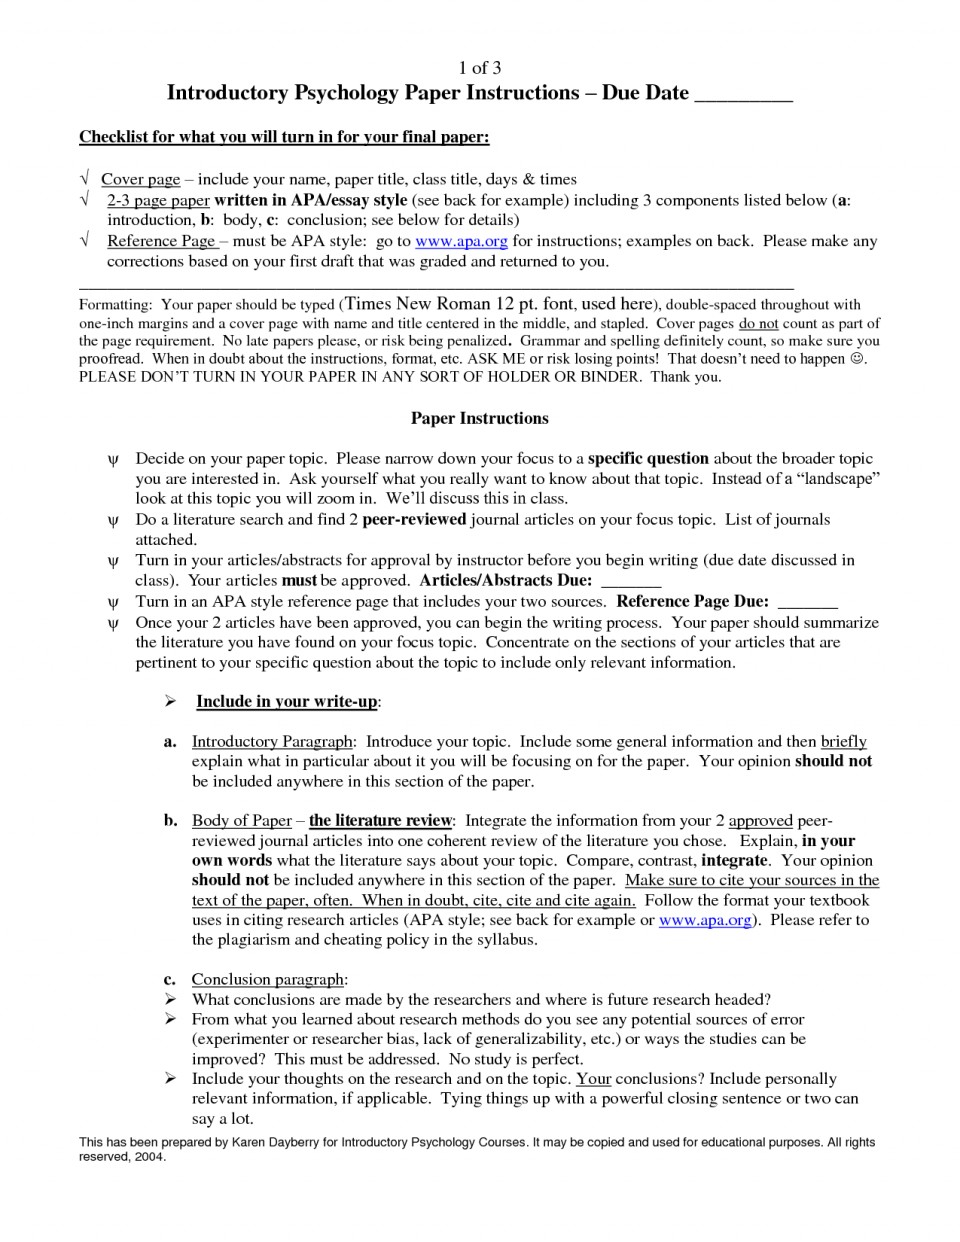 003 Psychology Research Paper Topics List Example Awesome Topic Ideas 960